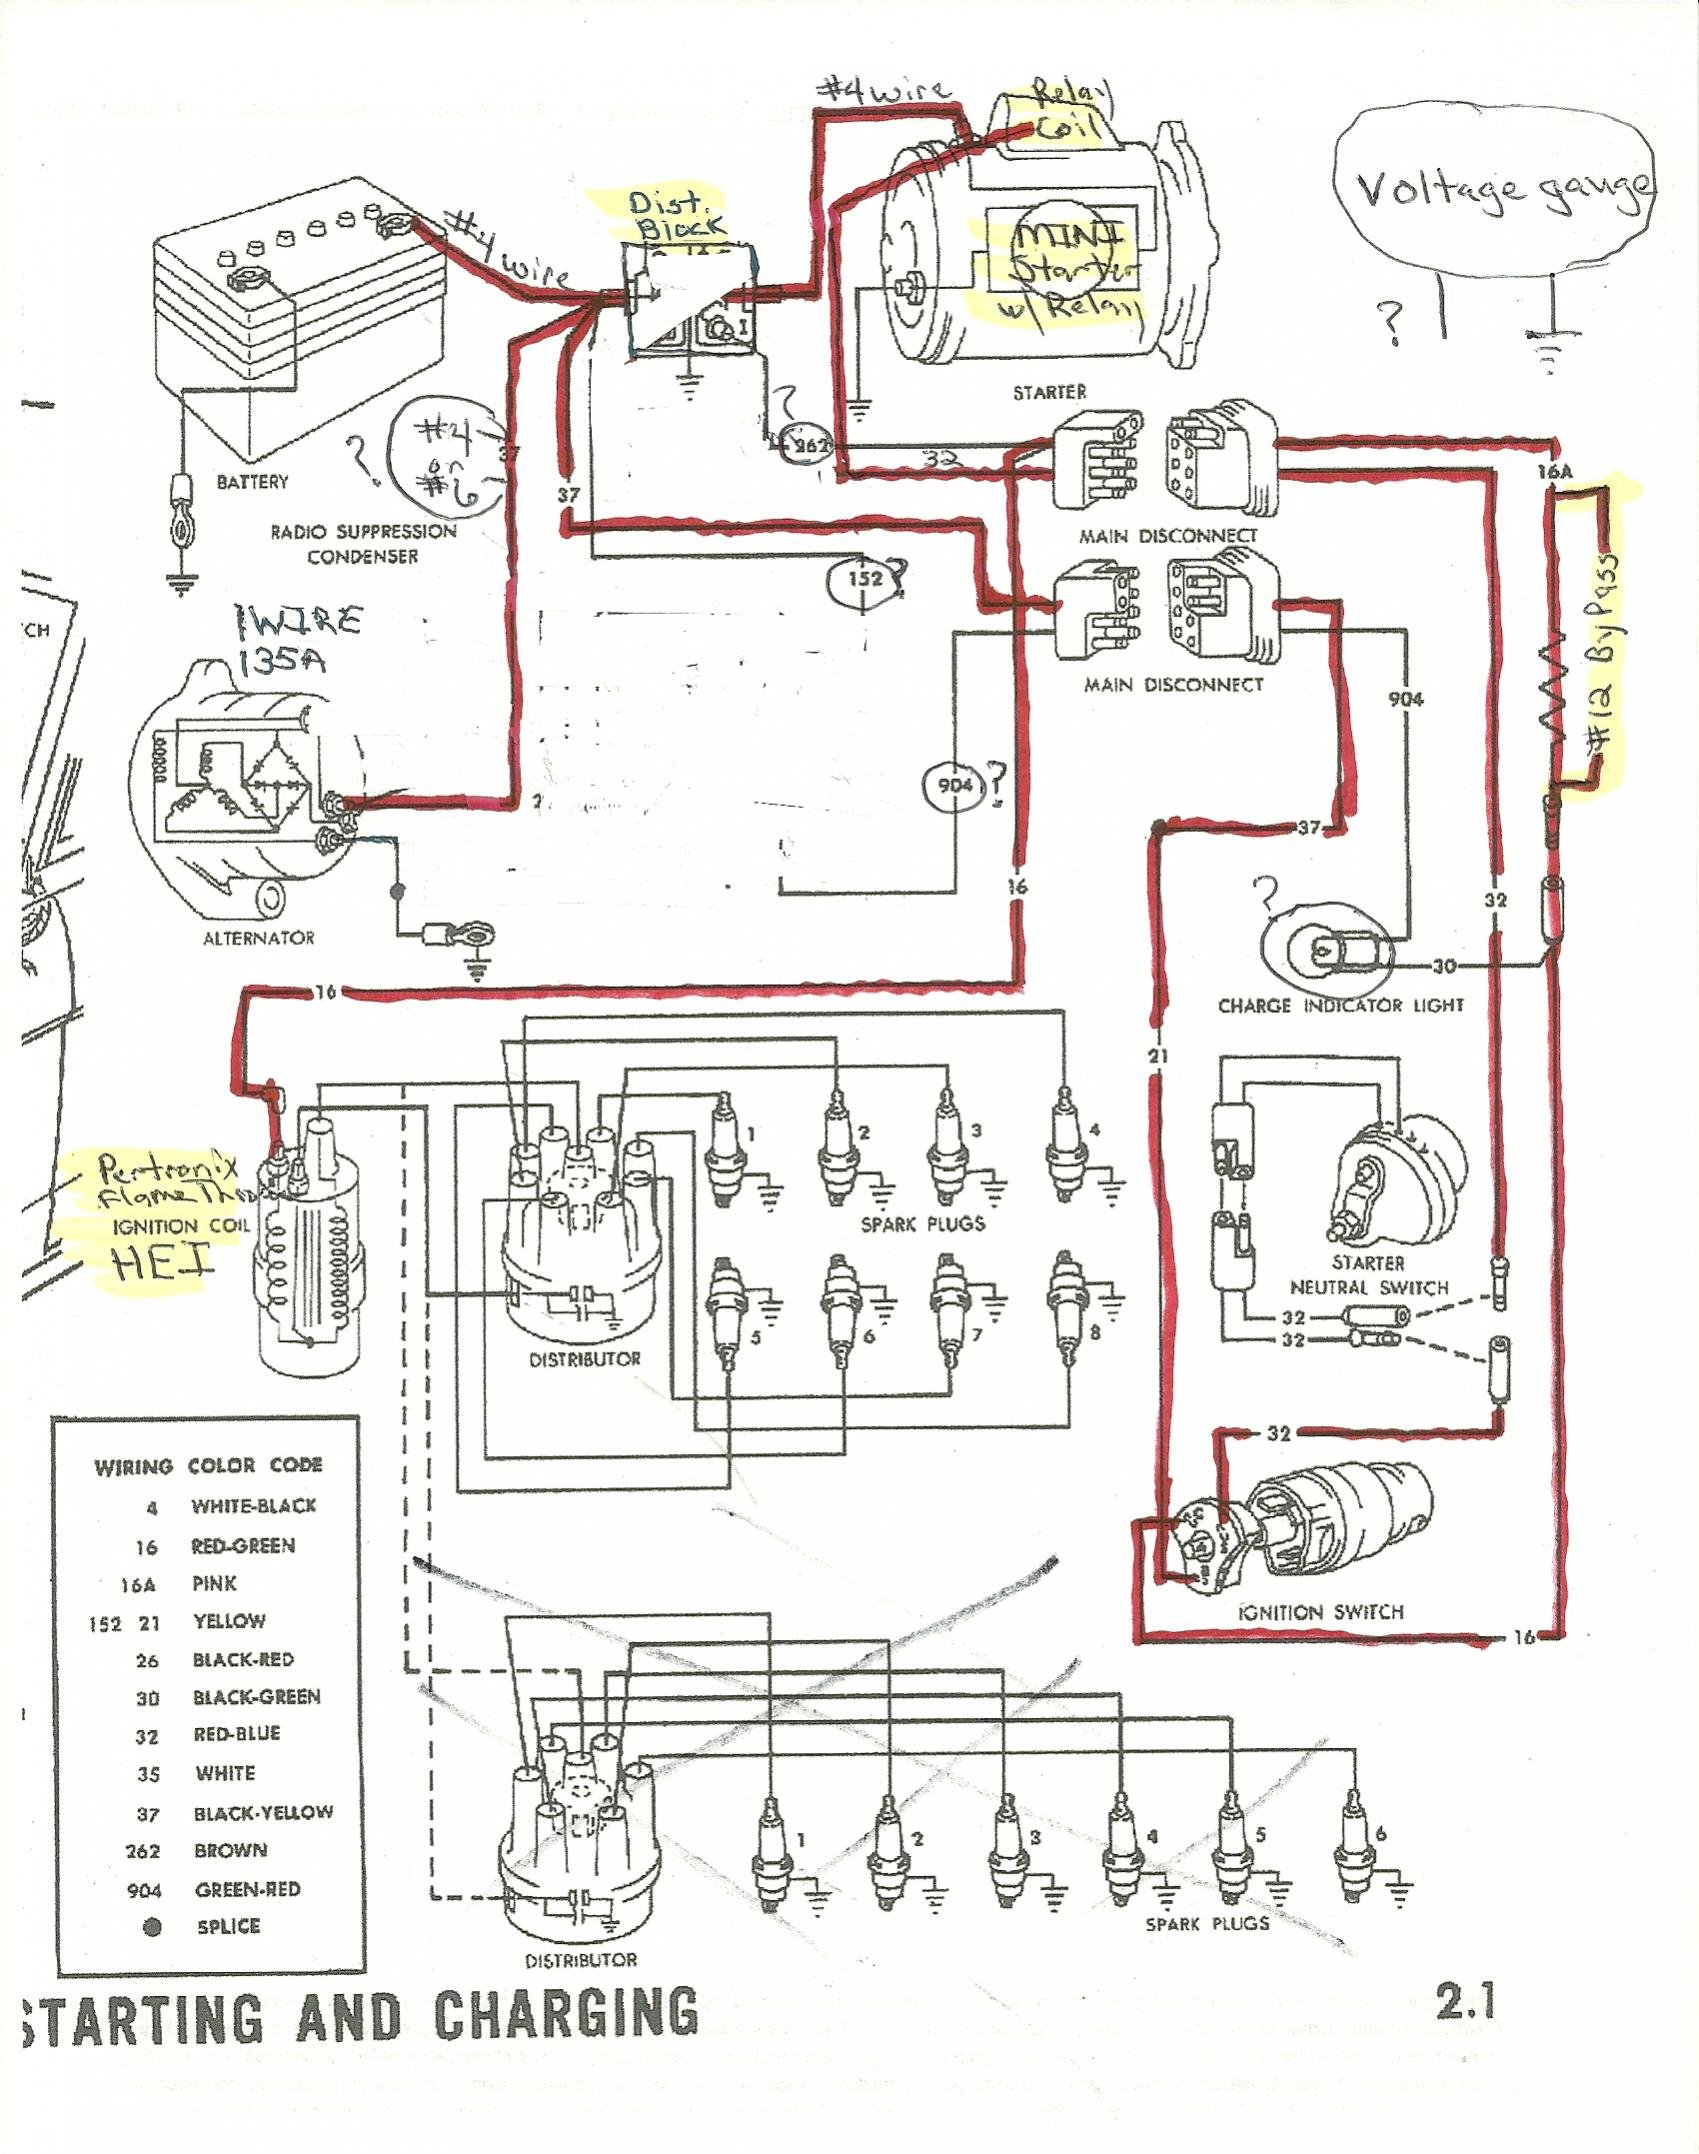 163469d1347246202 1965 alternator starter distributor wiring scan0001 1970 ford mustang mercury cougar original wiring diagram Ford Alternator Wiring Diagram at crackthecode.co